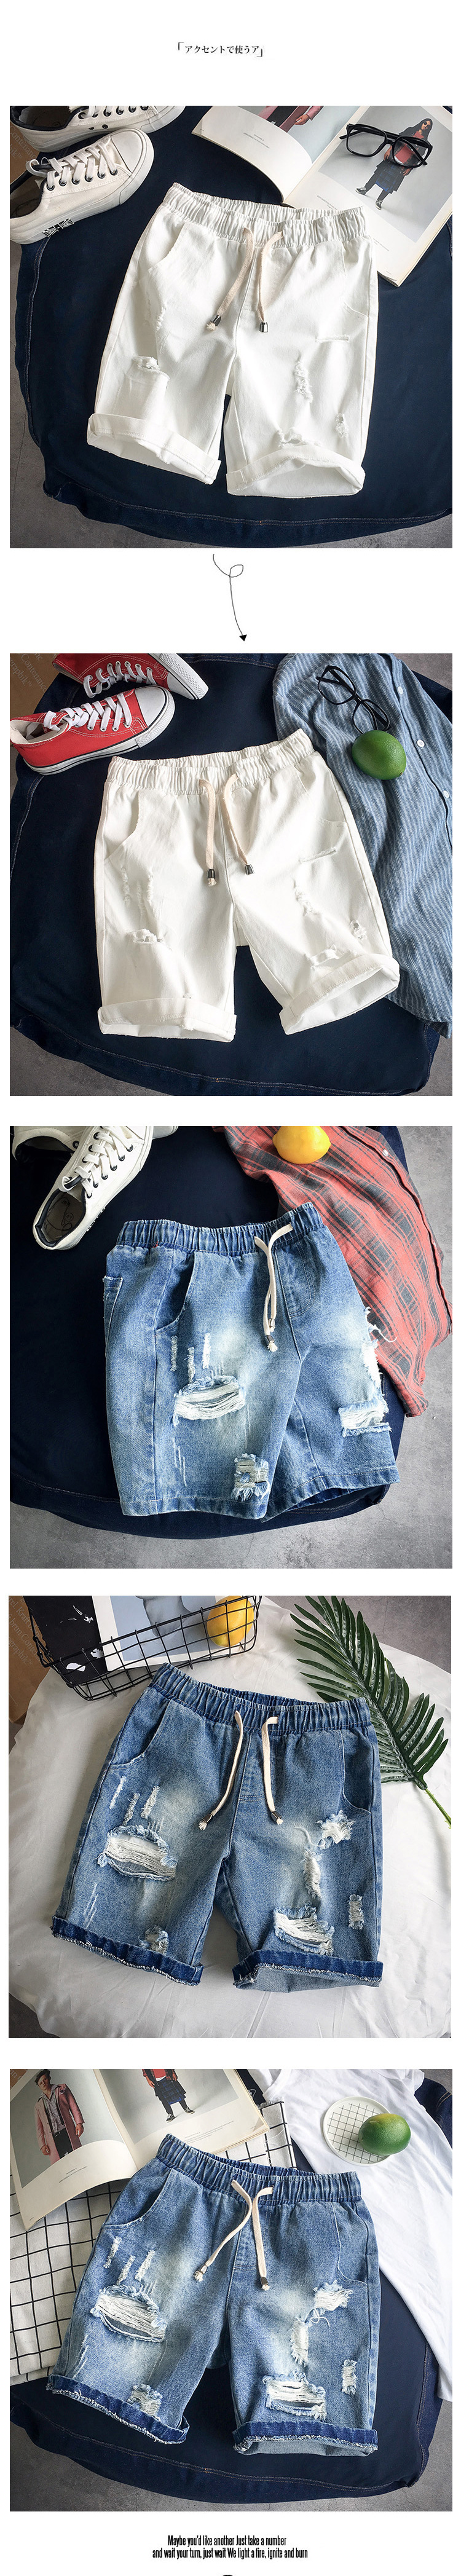 Elastico in Vita Traspirante Strappo Shorts In Denim Casual Maschile Mens Strappato Brevi Jeans Estate Shorts